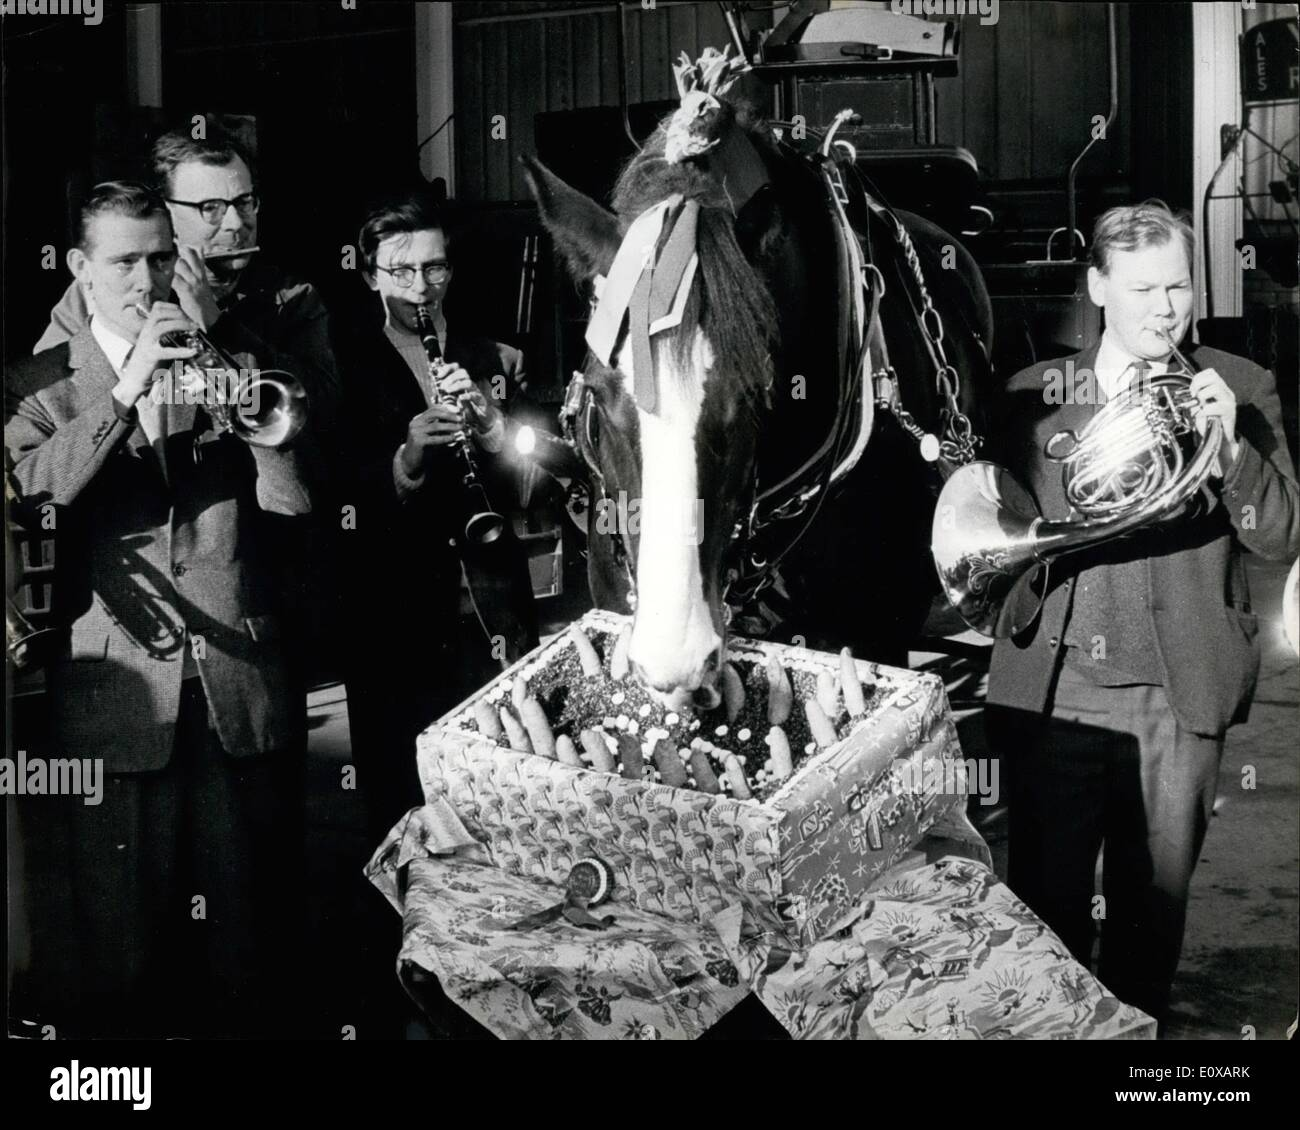 Jan. 01, 1966 - A 21st Birthday Party For ''Steve'' - The Oldest Drayhorse At Young's Brewery: ''Steve'', the oldest Shire horse at Young's Brewery, Wandsworth, celebrated his 21st birthday with a party at the Brewery stables today. The normal working life for a Shire horse is about 7 years, but ''Steve'' has been with Young's for 14 years and still goes out daily delivering beer to nearby pubs. One of ''Steve's'' 21st birthday presents was a box of 21 carrots - Stock Image